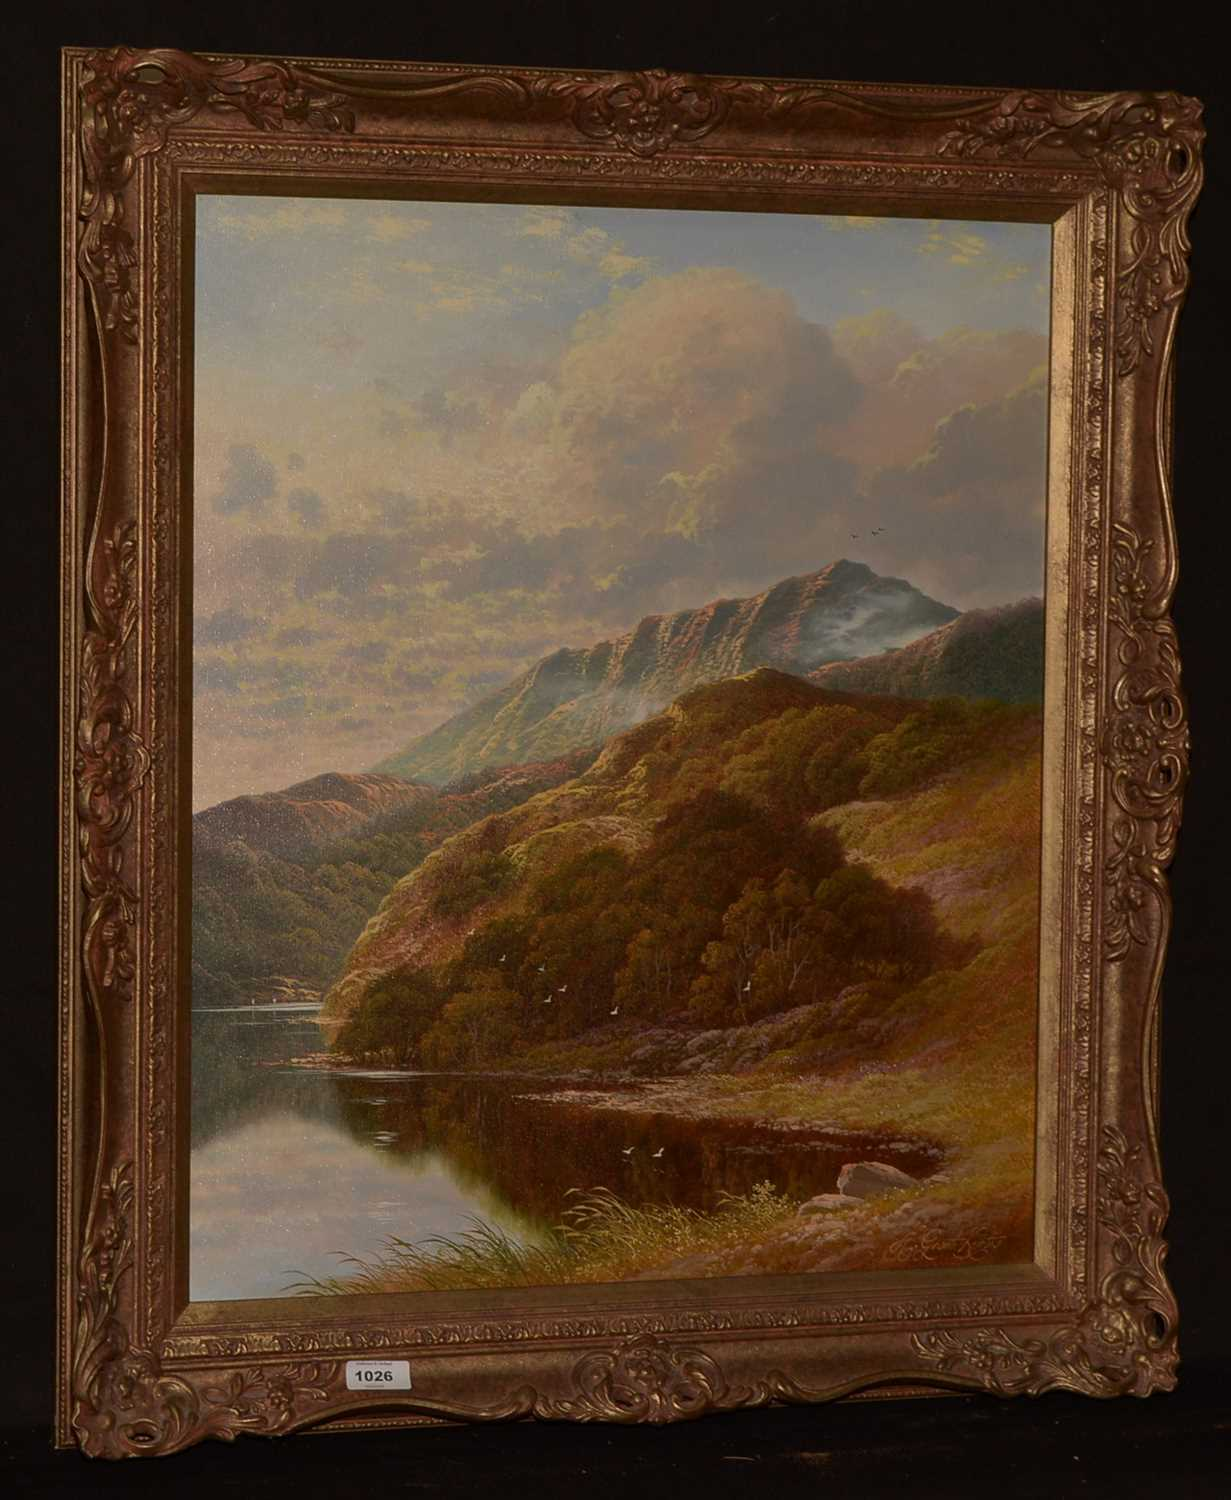 Lot 1026-Andrew Grant Kurtis - oil.